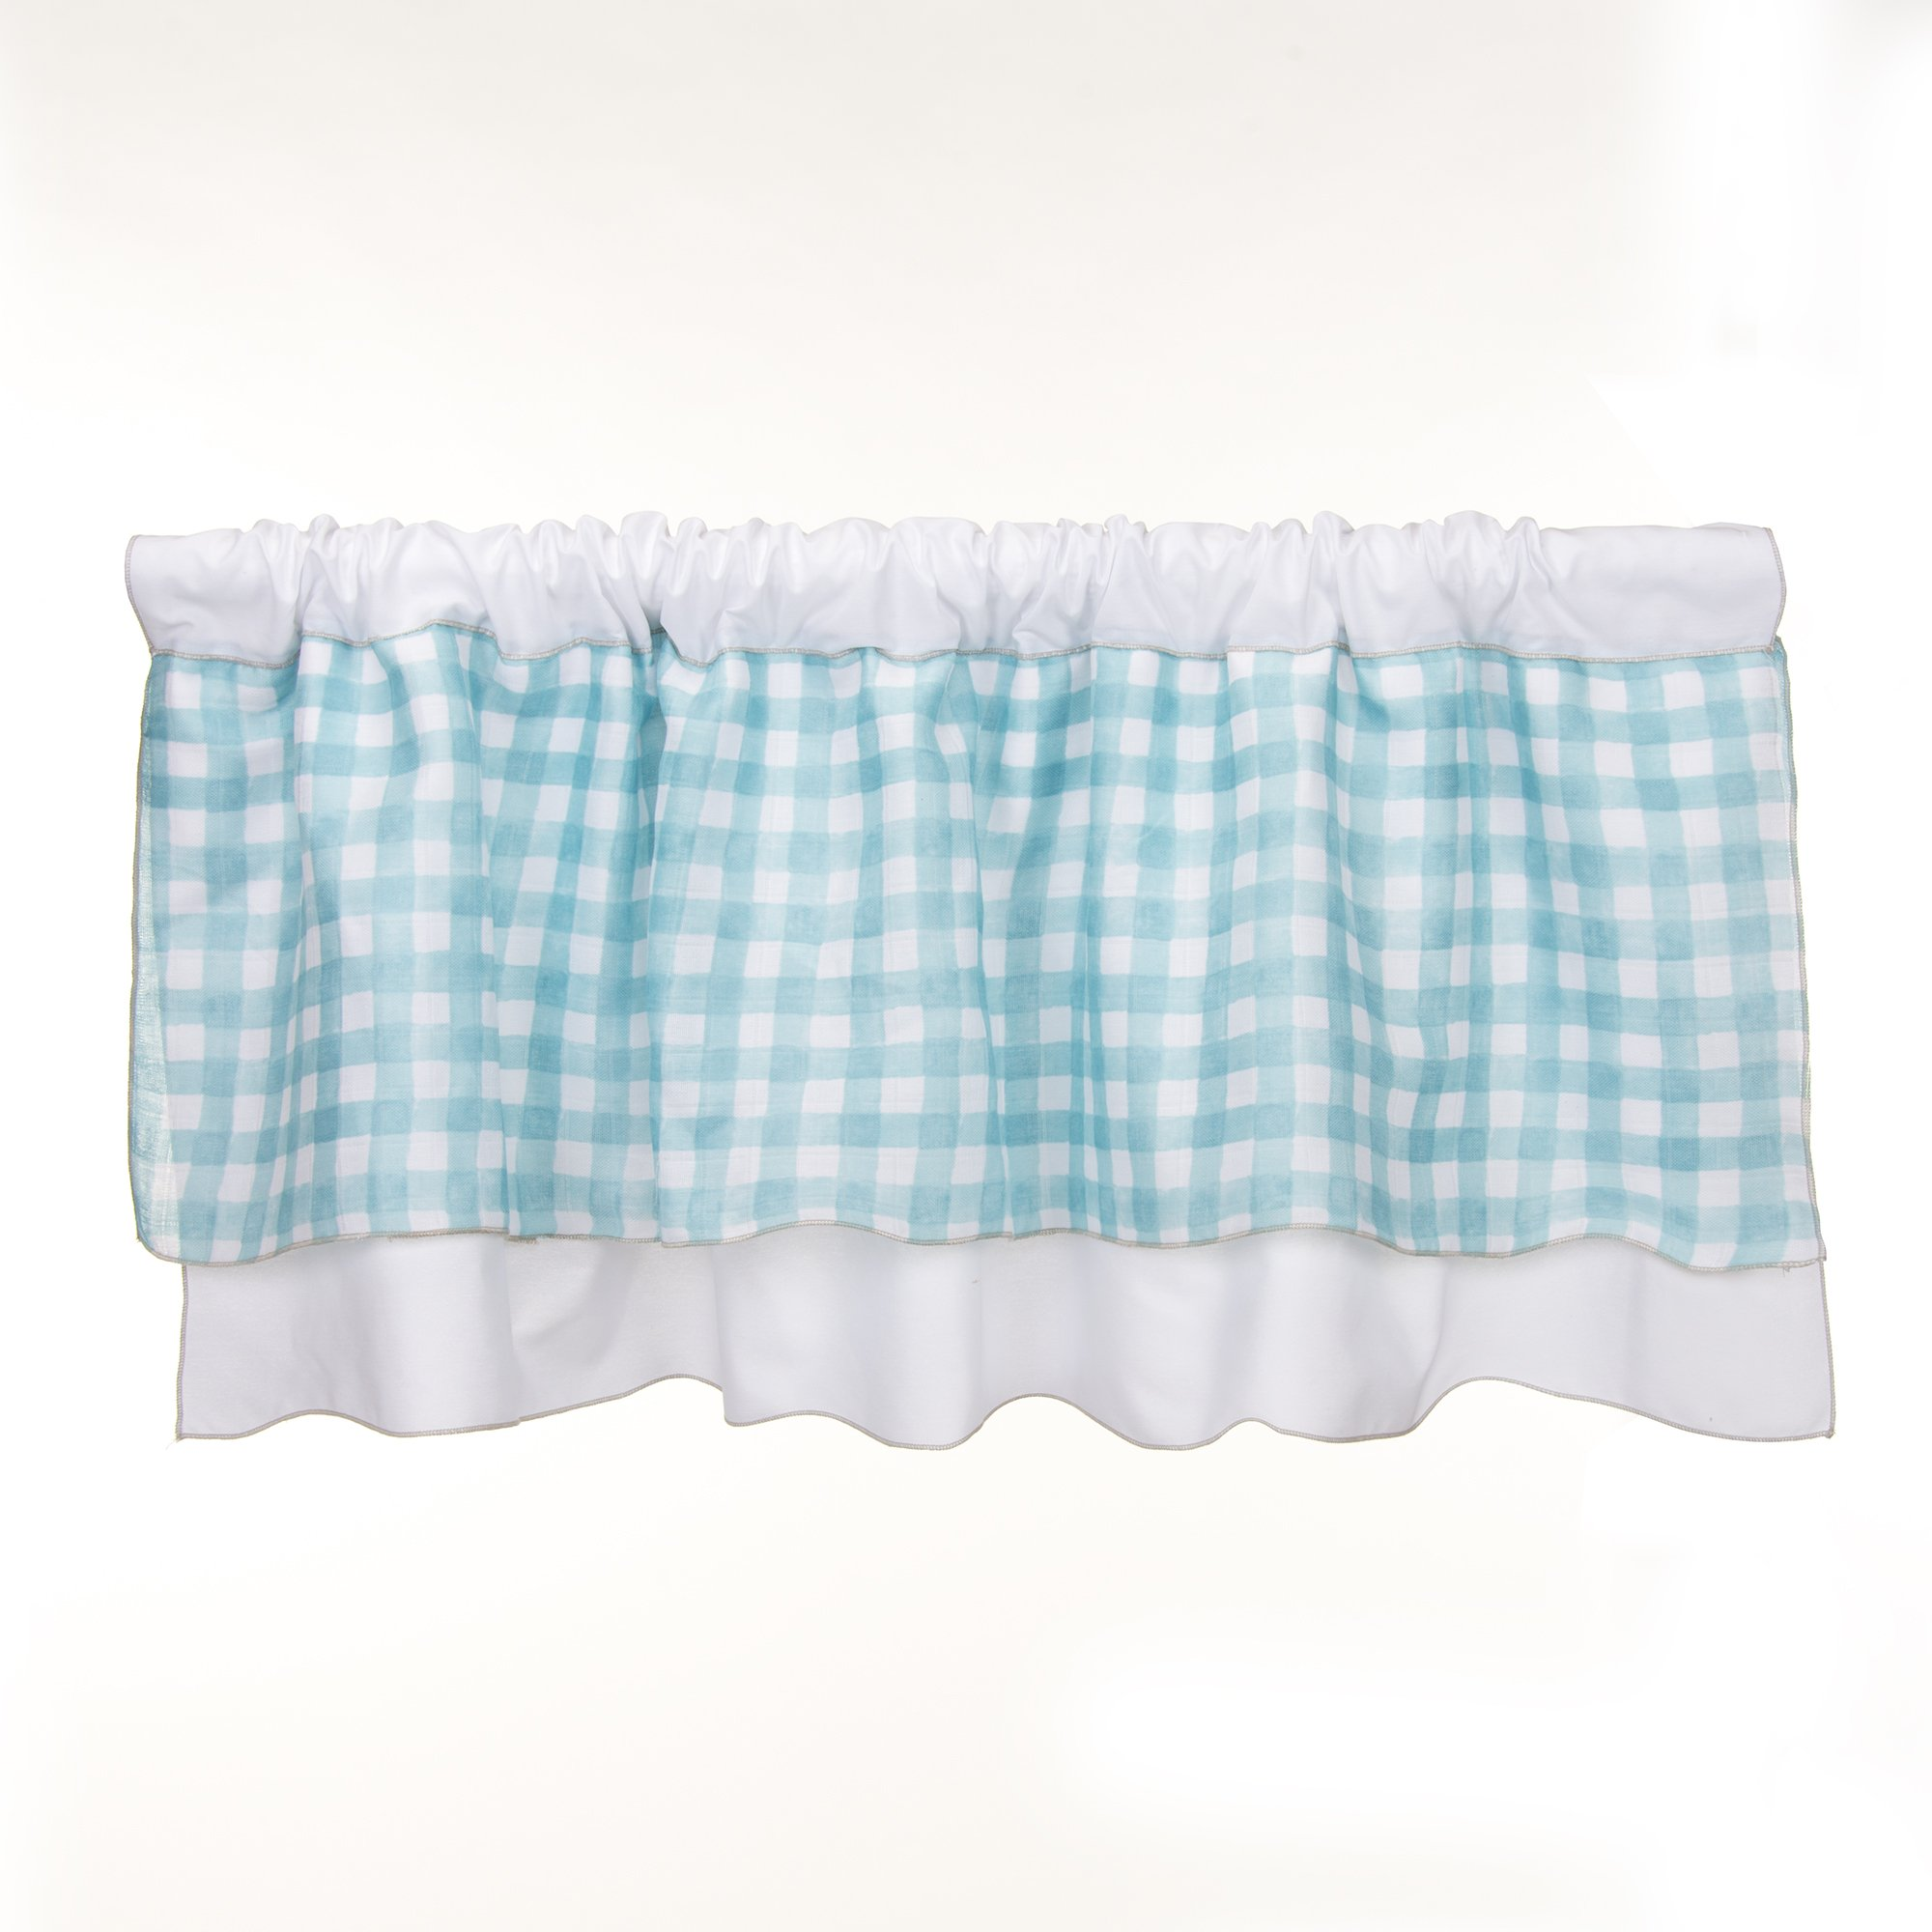 Glenna Jean Cottage Collection Willow Window Valance, White with Spa plaid, 70'' x 18''